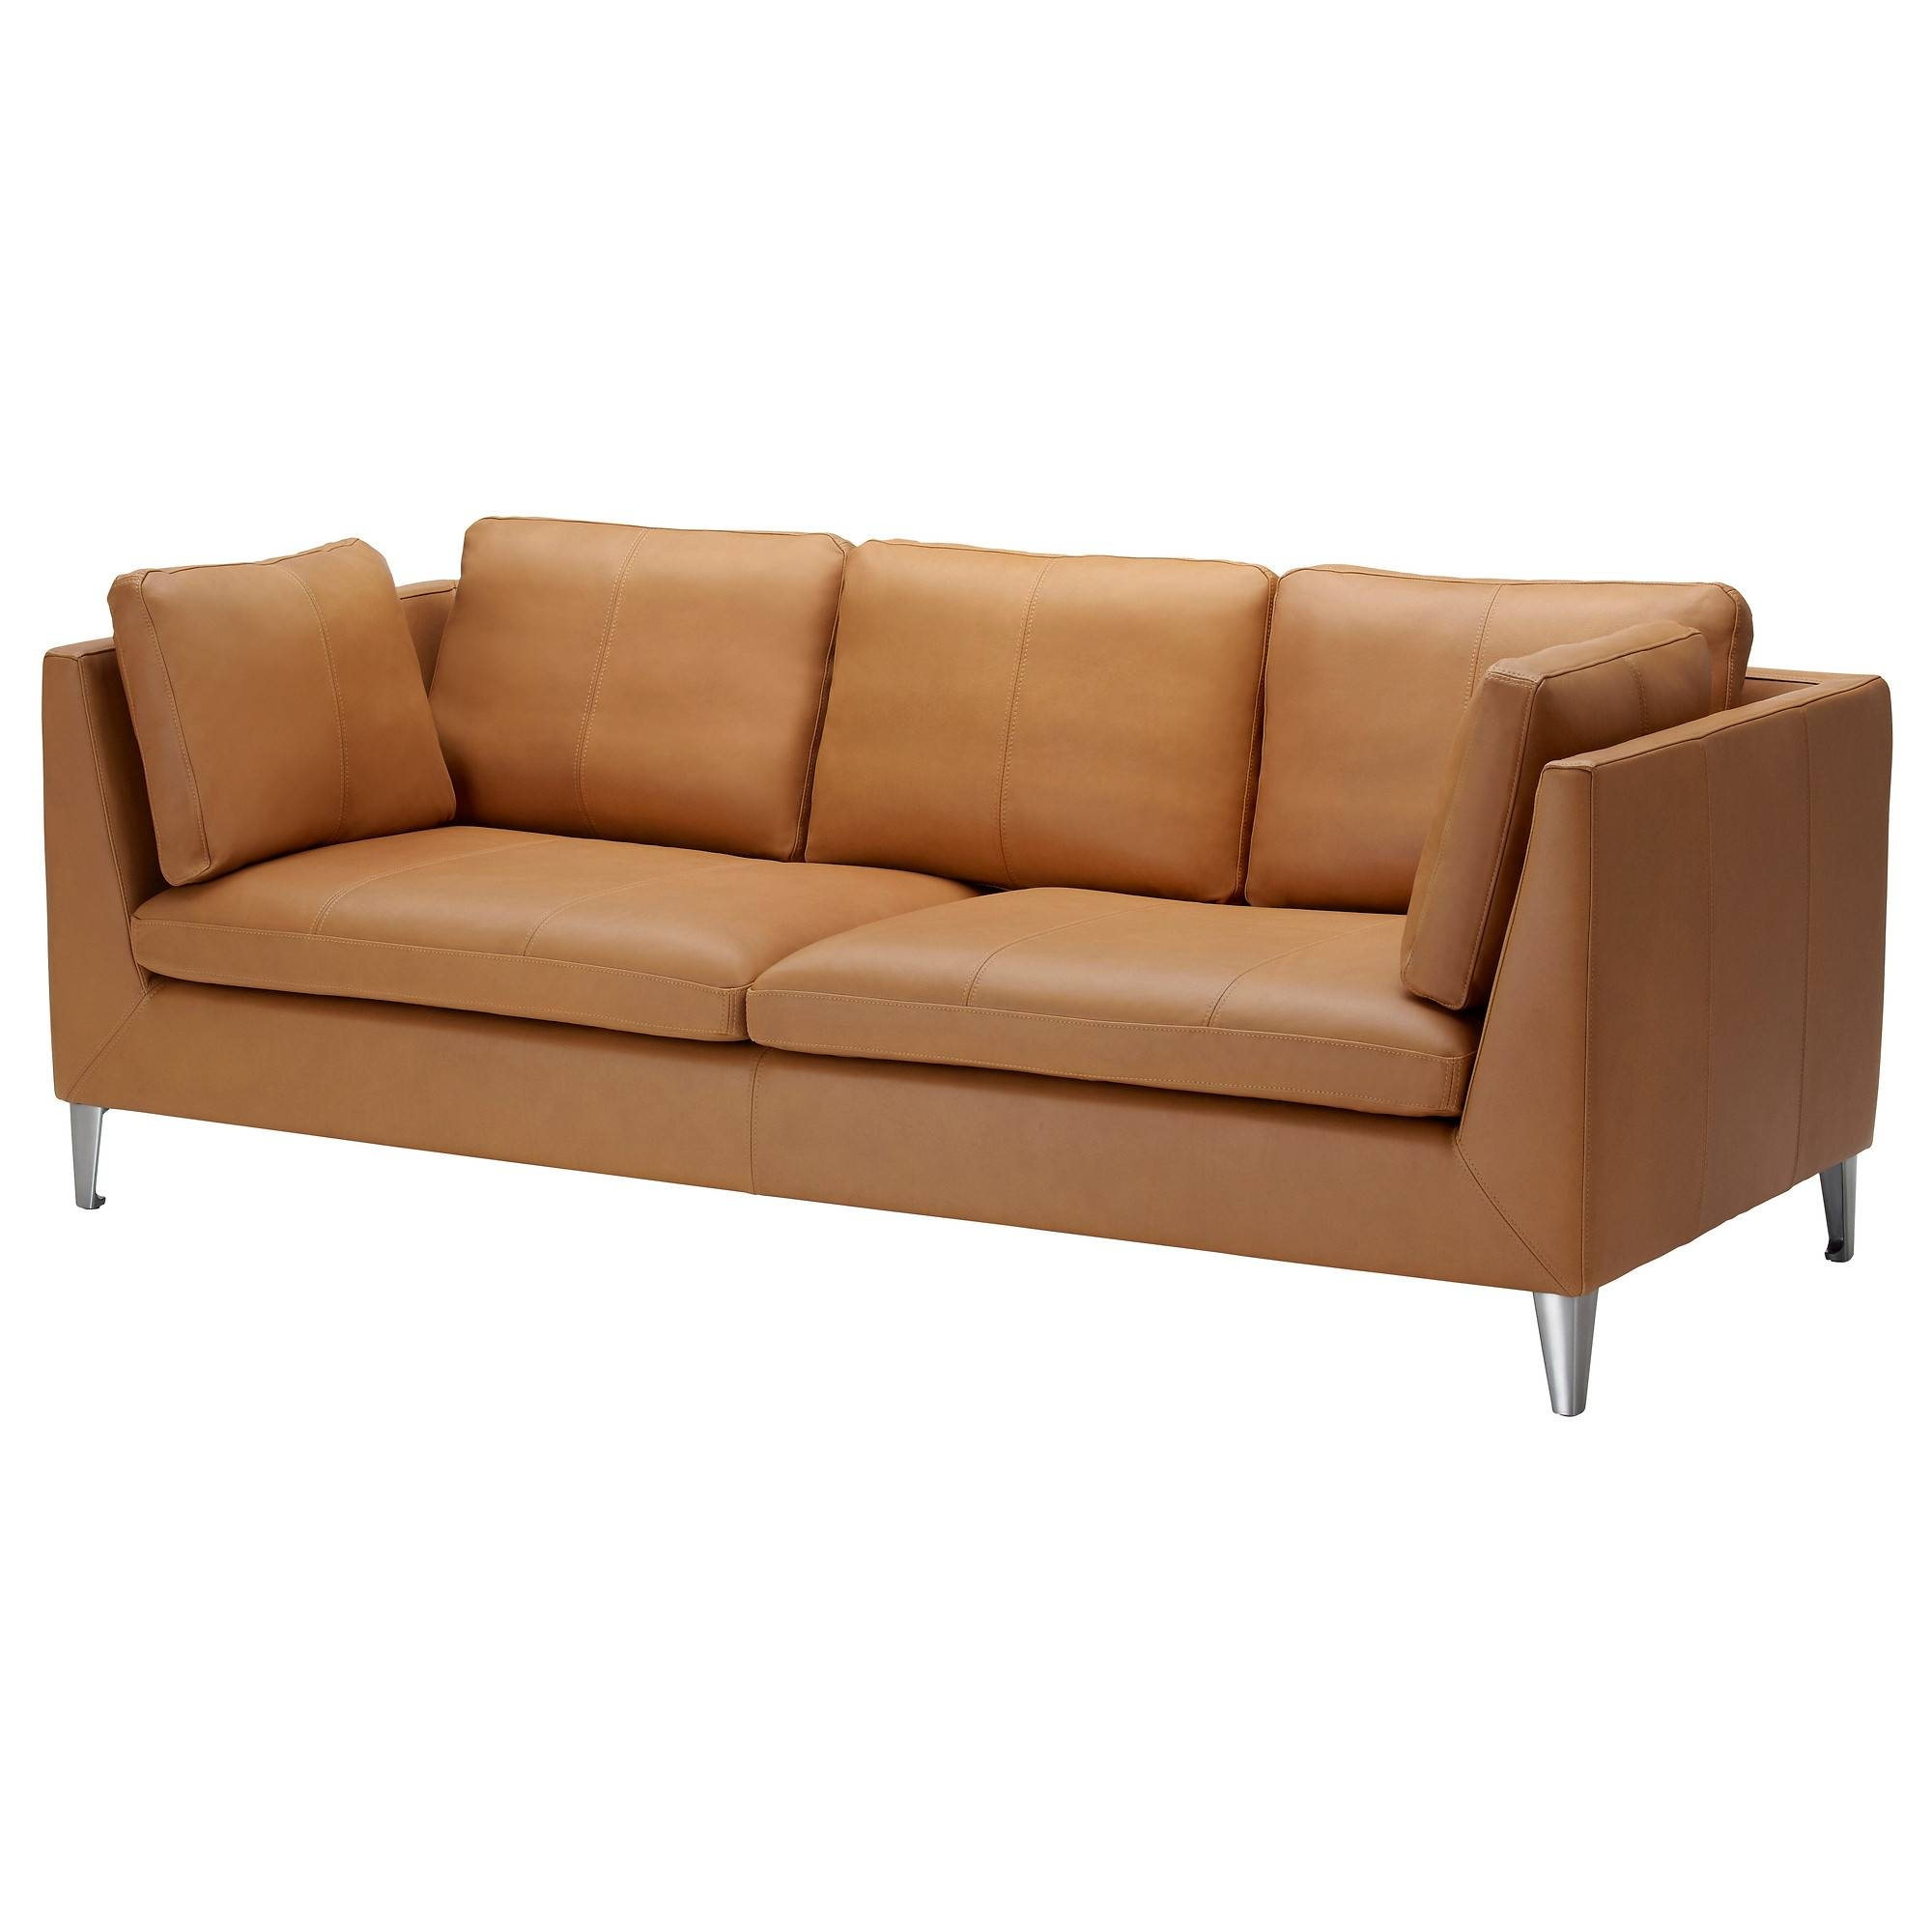 Leather & Faux Leather Couches, Chairs & Ottomans - Ikea intended for Light Tan Leather Sofas (Image 13 of 30)